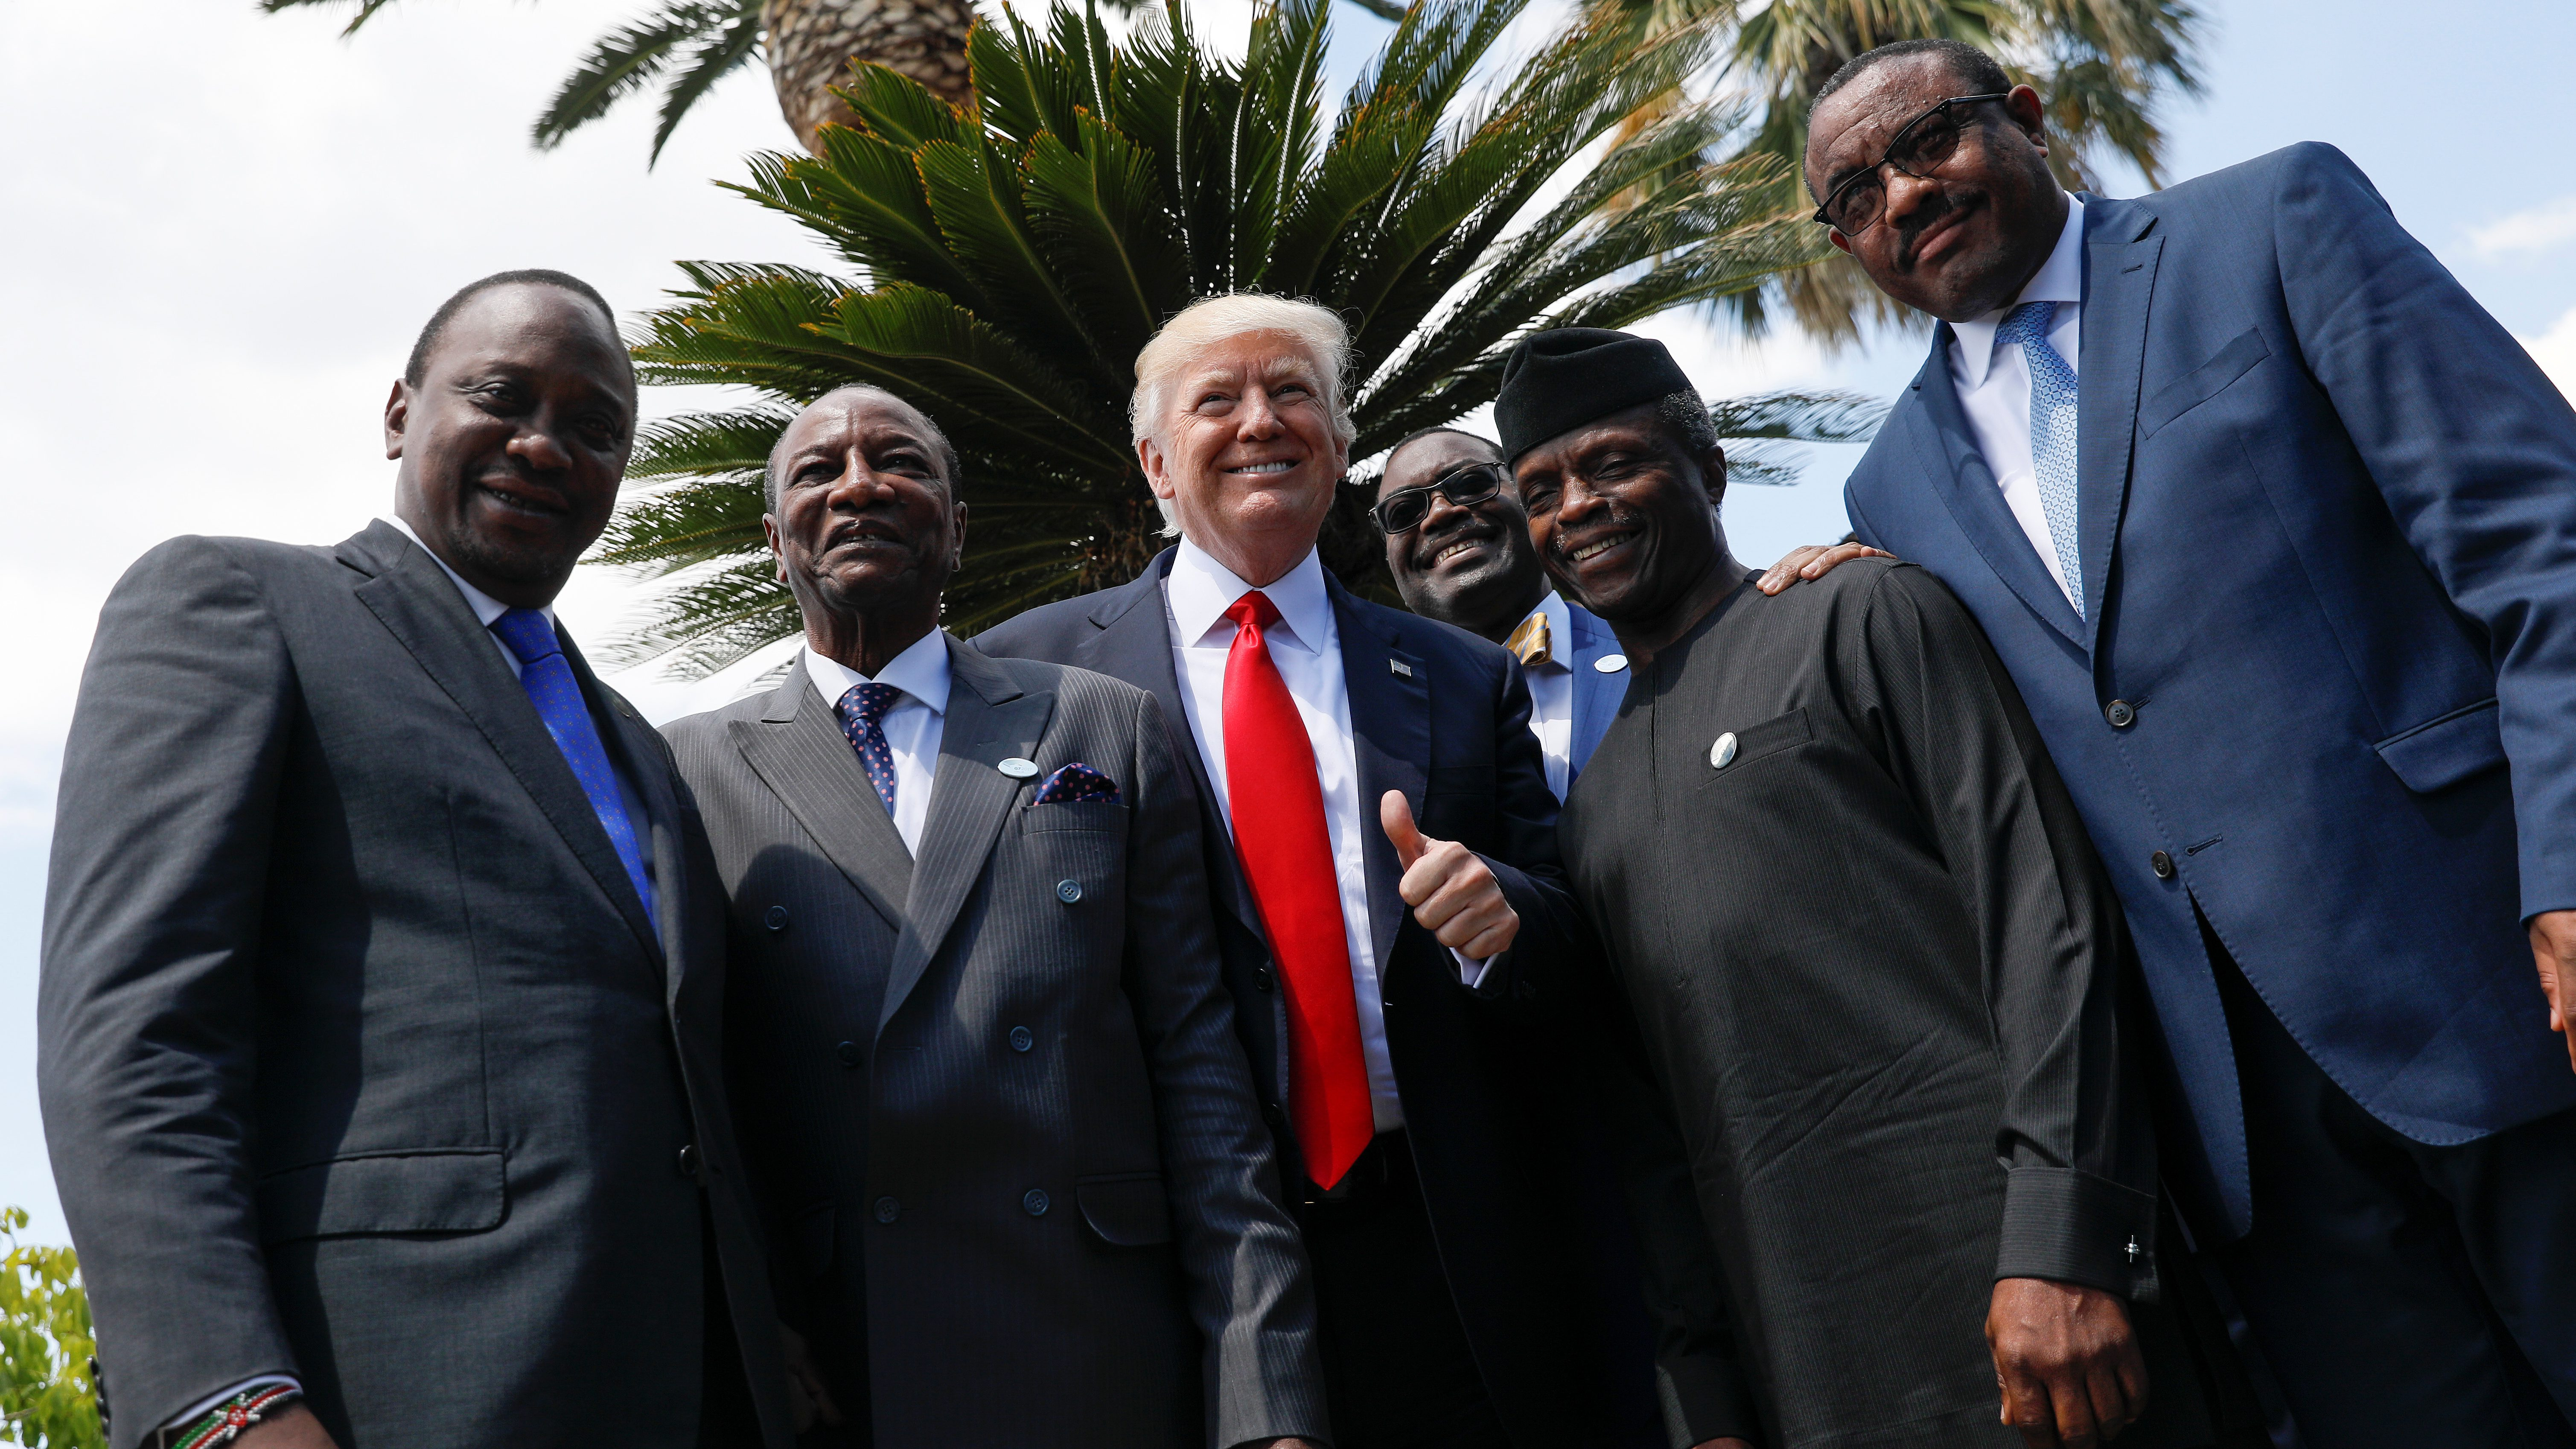 Trump poses with African leaders following family photo of the G7 Summit expanded session in Taormina